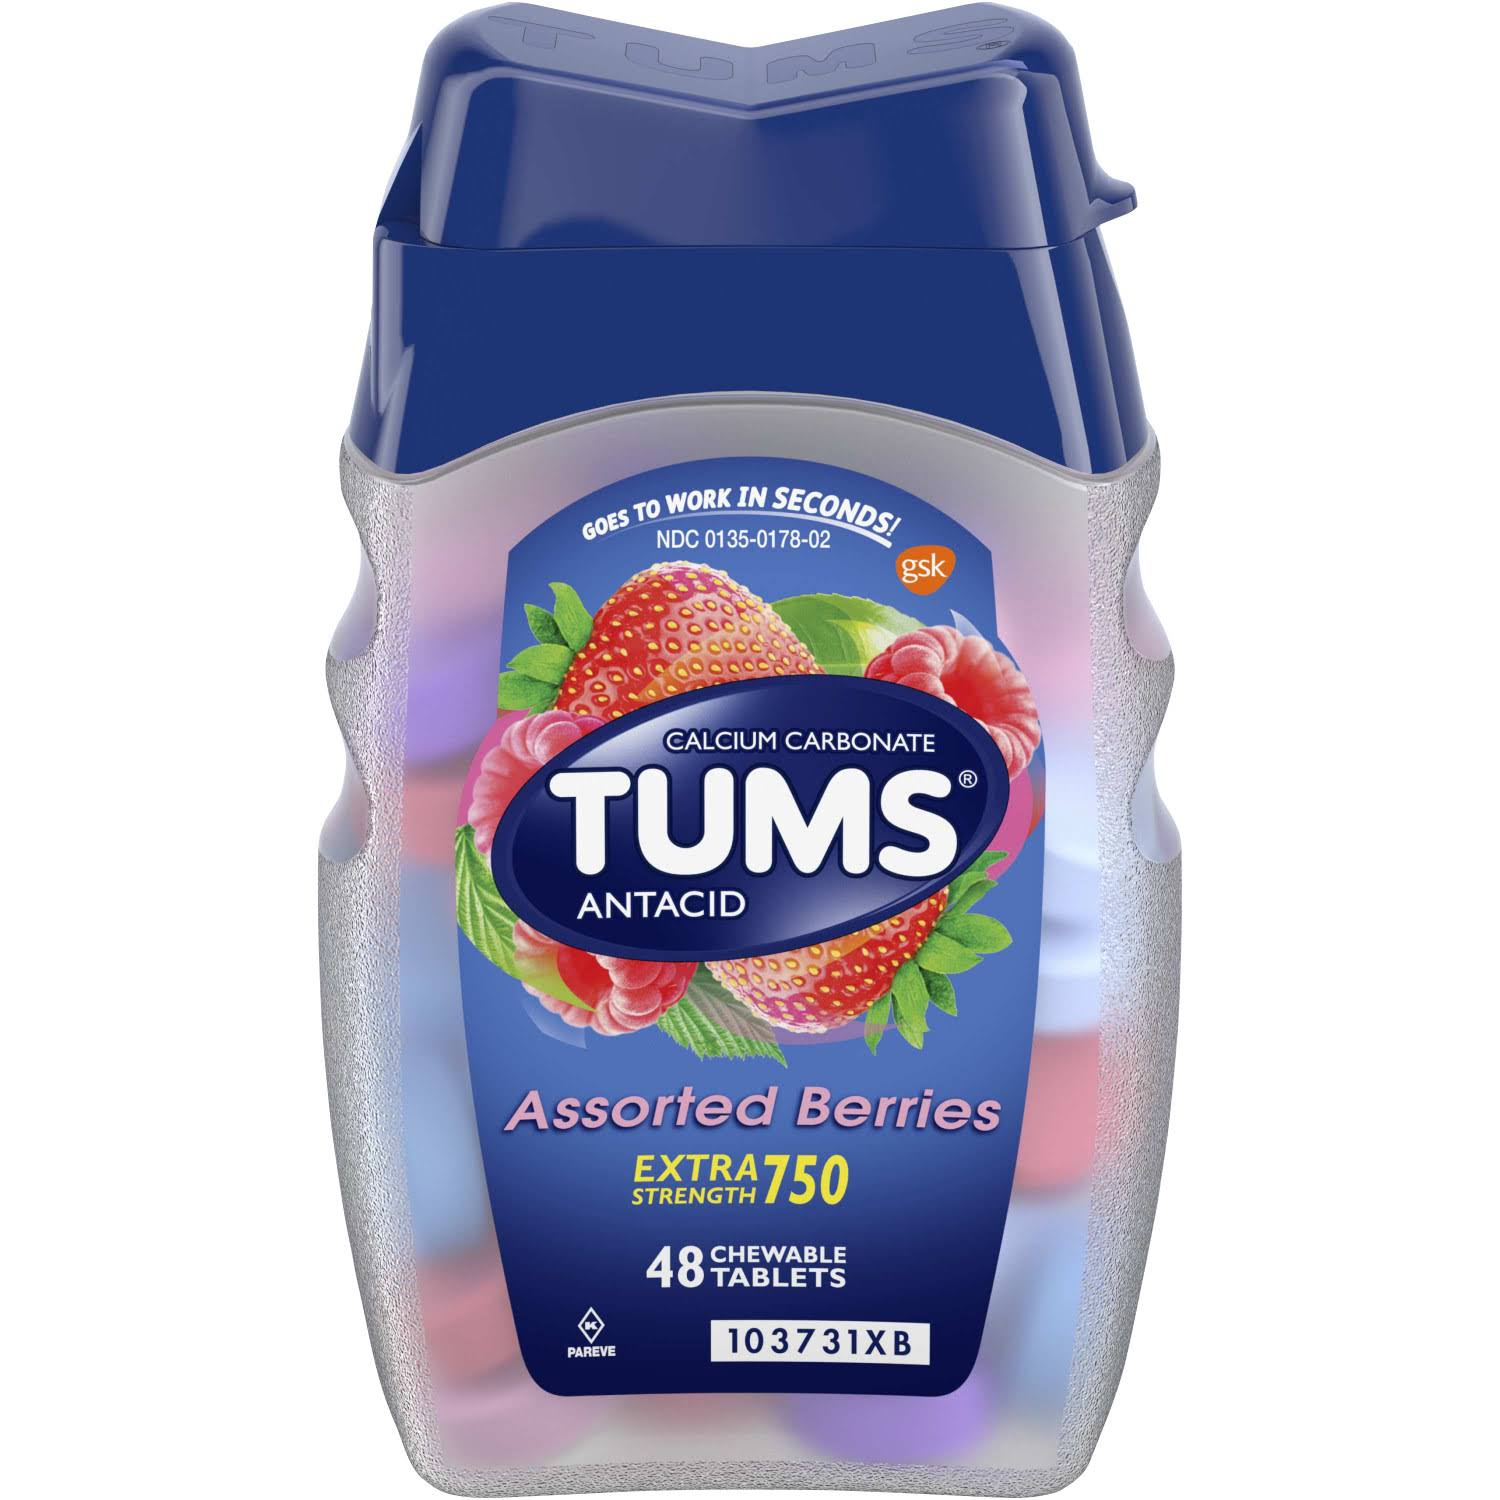 Tums Calcium Carbonate Antacid - Assorted Berries, 48 Chewable Tablets